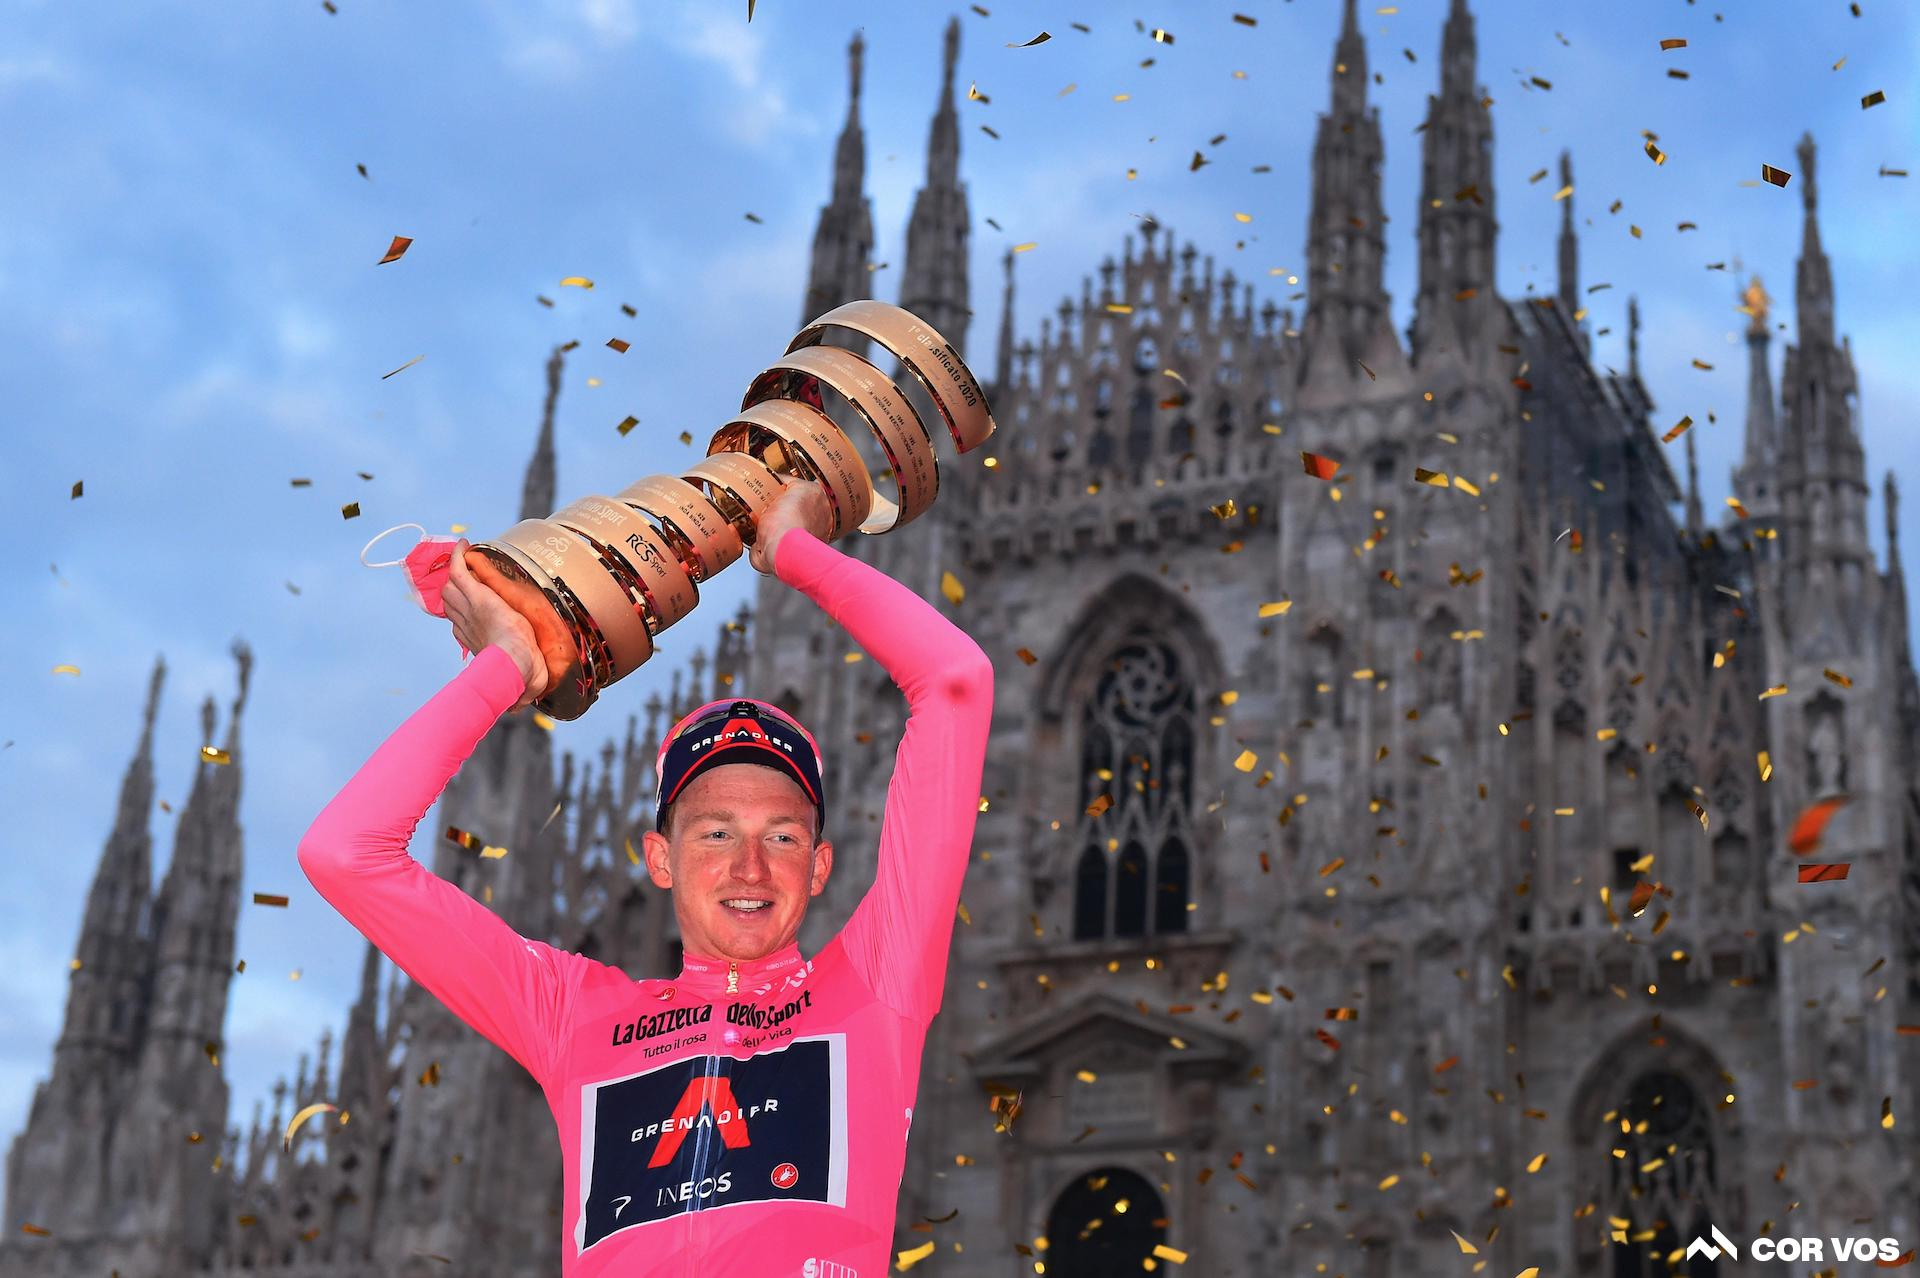 Preview: Your guide to the 2021 Giro d'Italia contenders, sprinters and more